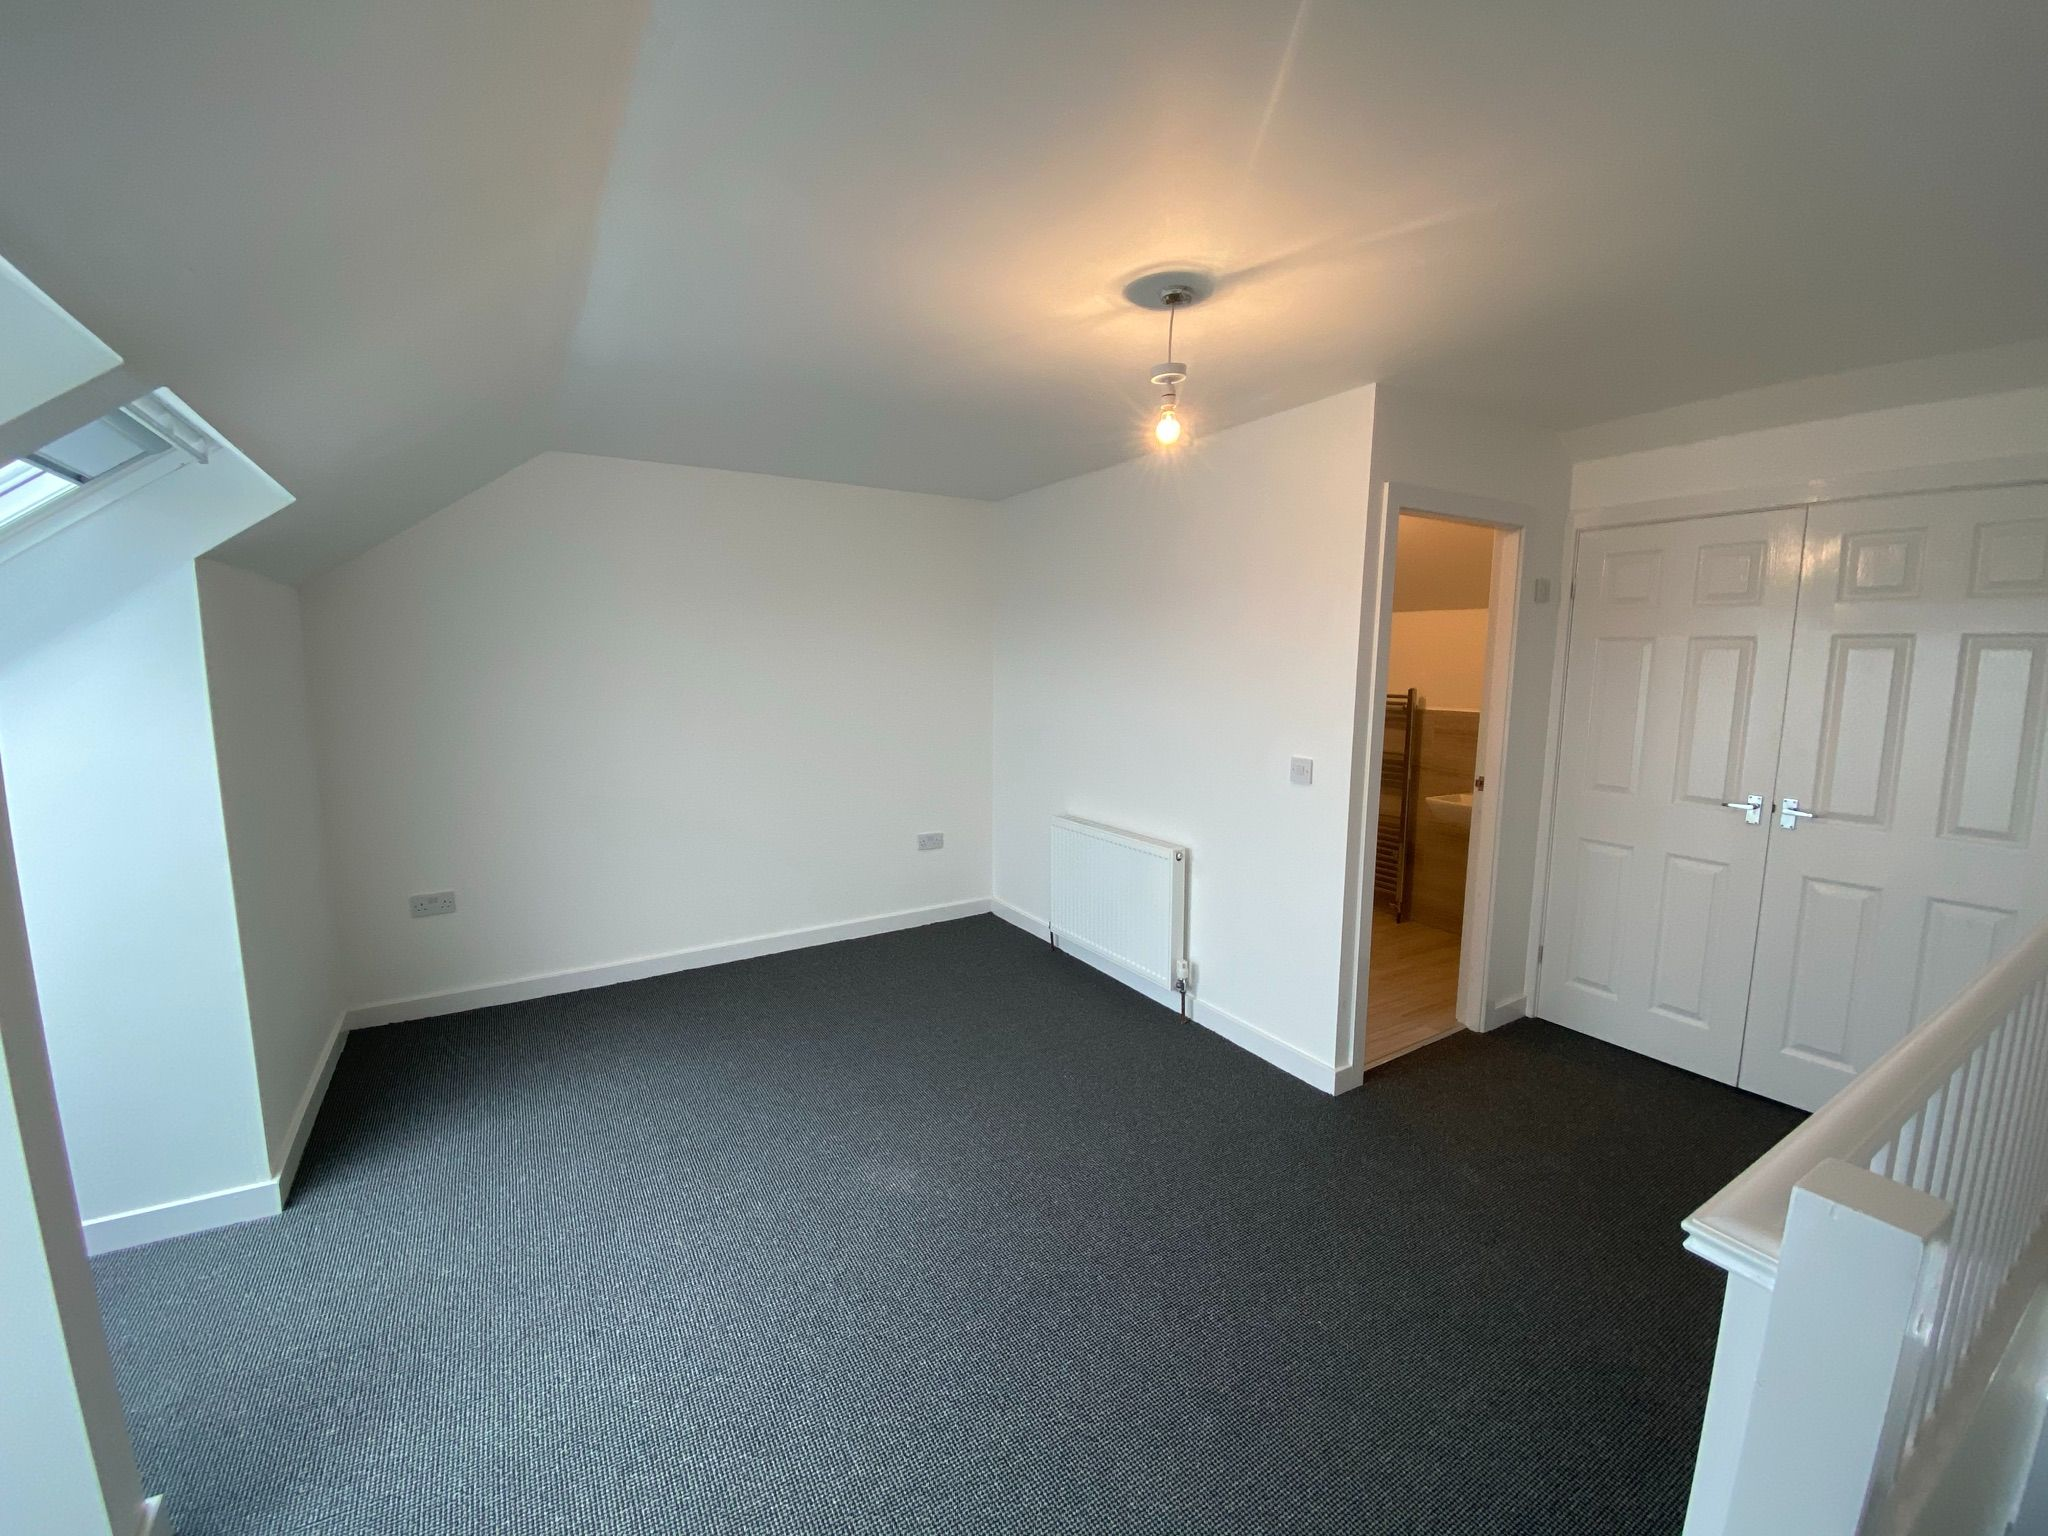 4 bedroom detached house For Sale in Durham - Photograph 12.